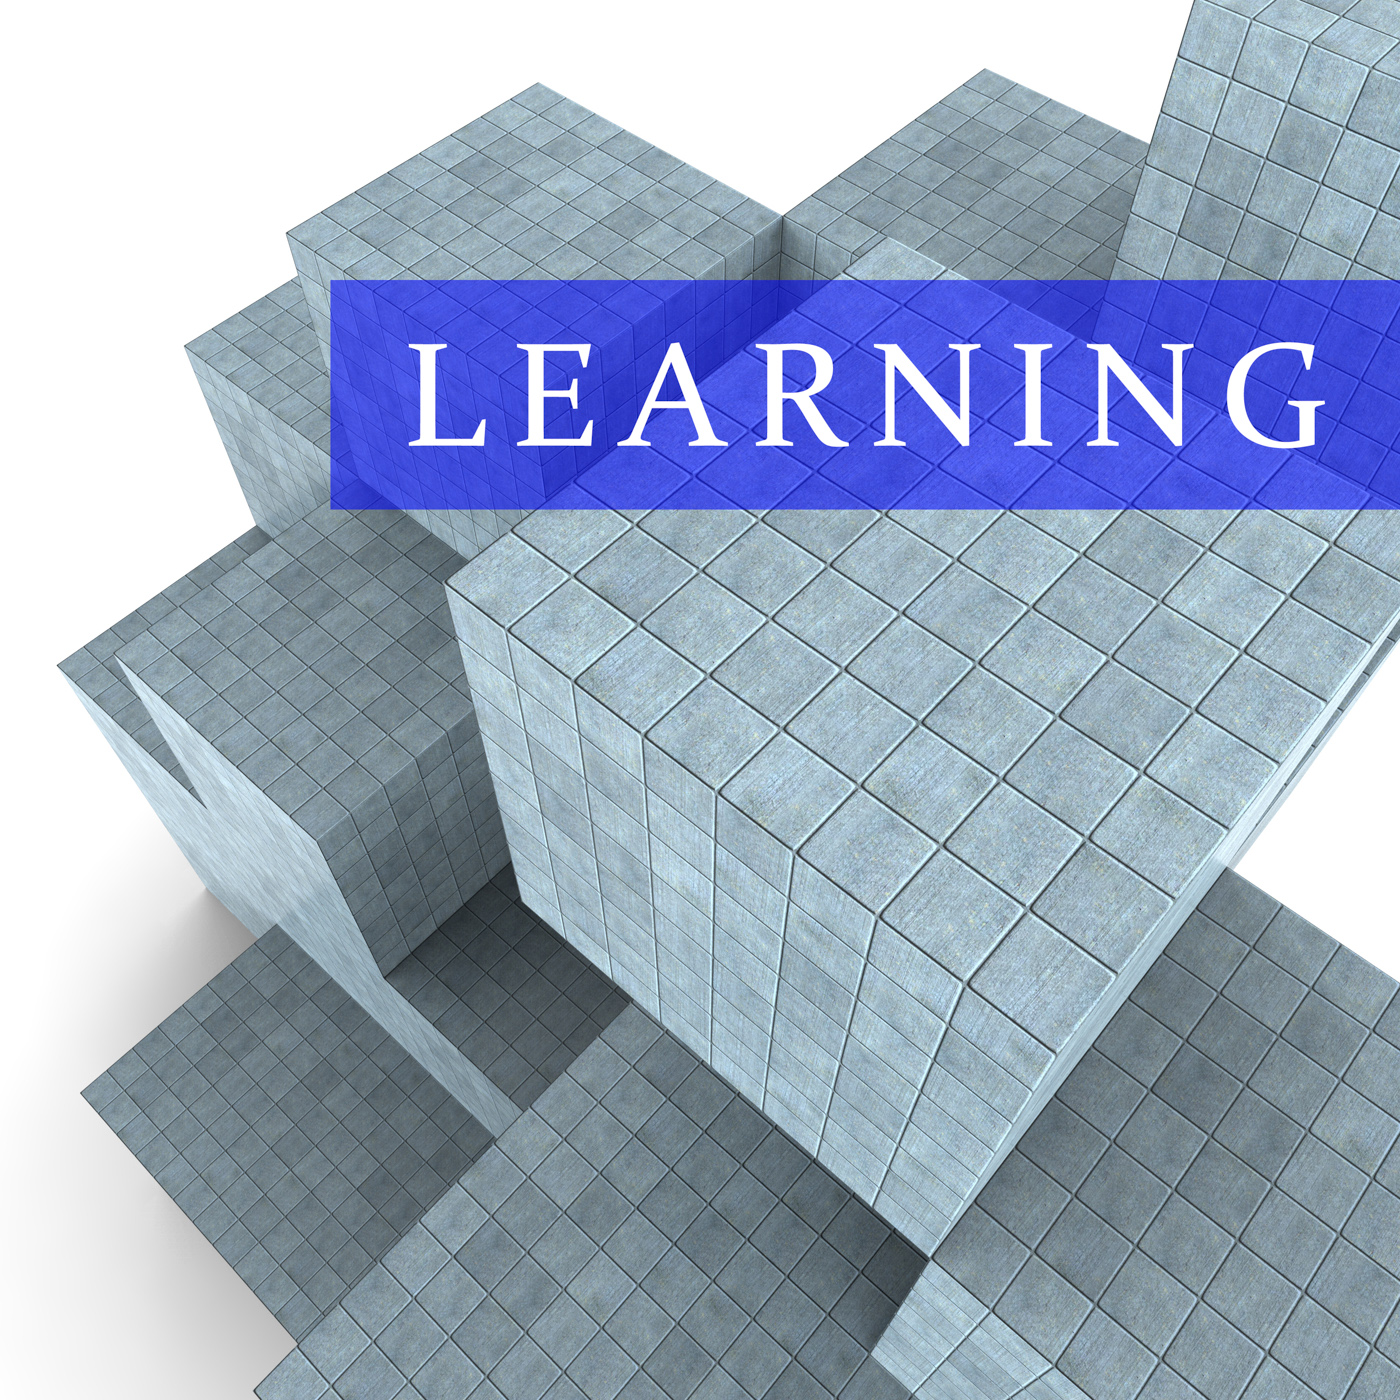 Learning Blocks Indicates Develop College And Educated 3d Rendering, 3drendering, Learning, Tutoring, Training, HQ Photo